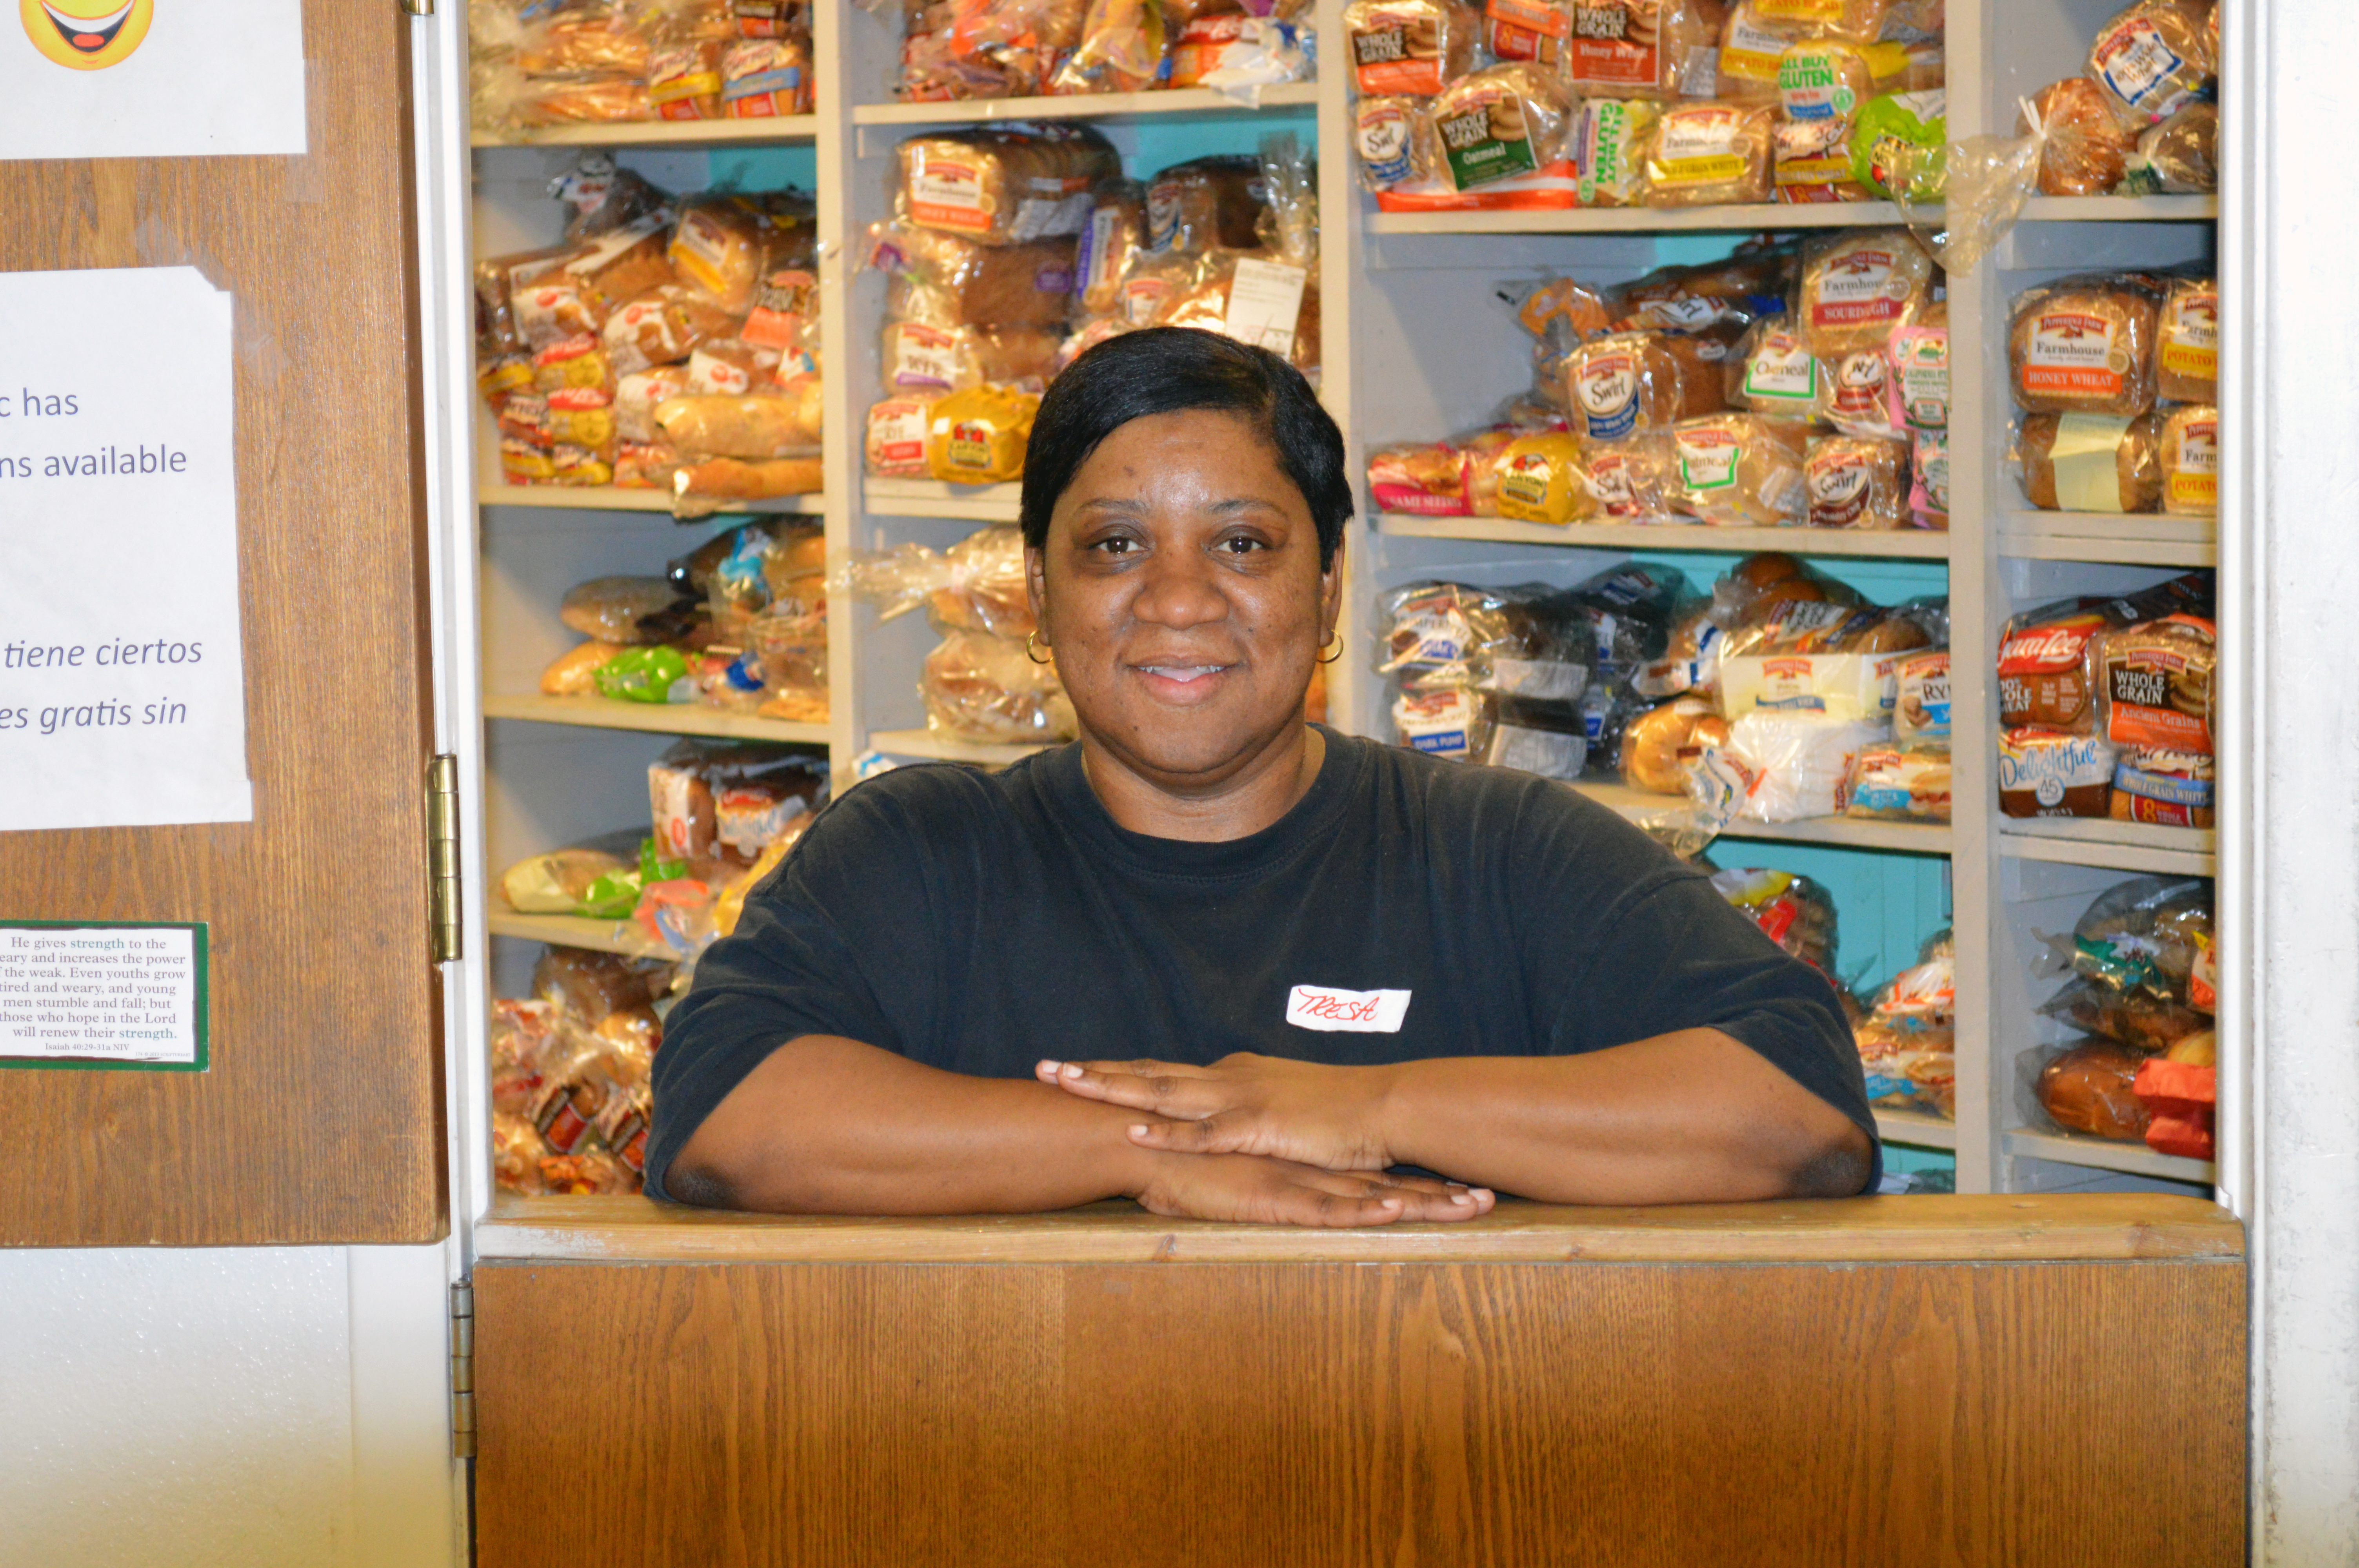 A volunteer works in Mission Arlington's food pantry, helping other get the food they need for their families.